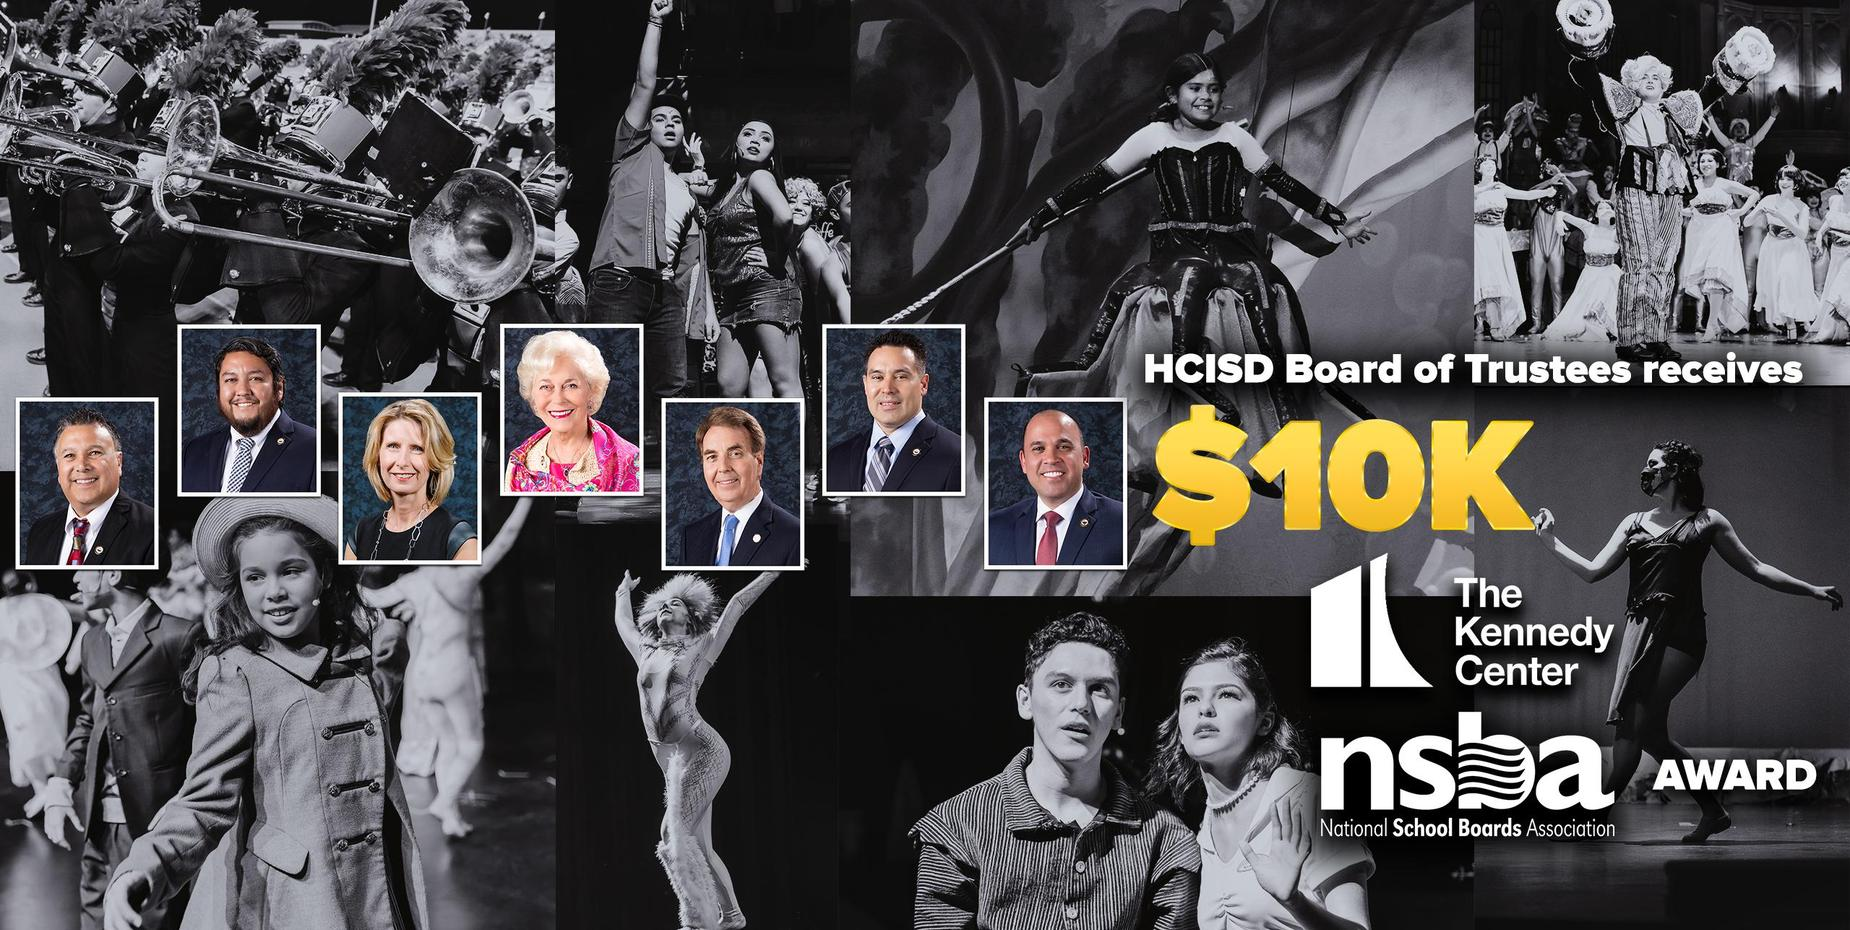 HCISD Board of Trustees receive $10K Kennedy Center and NSBA award